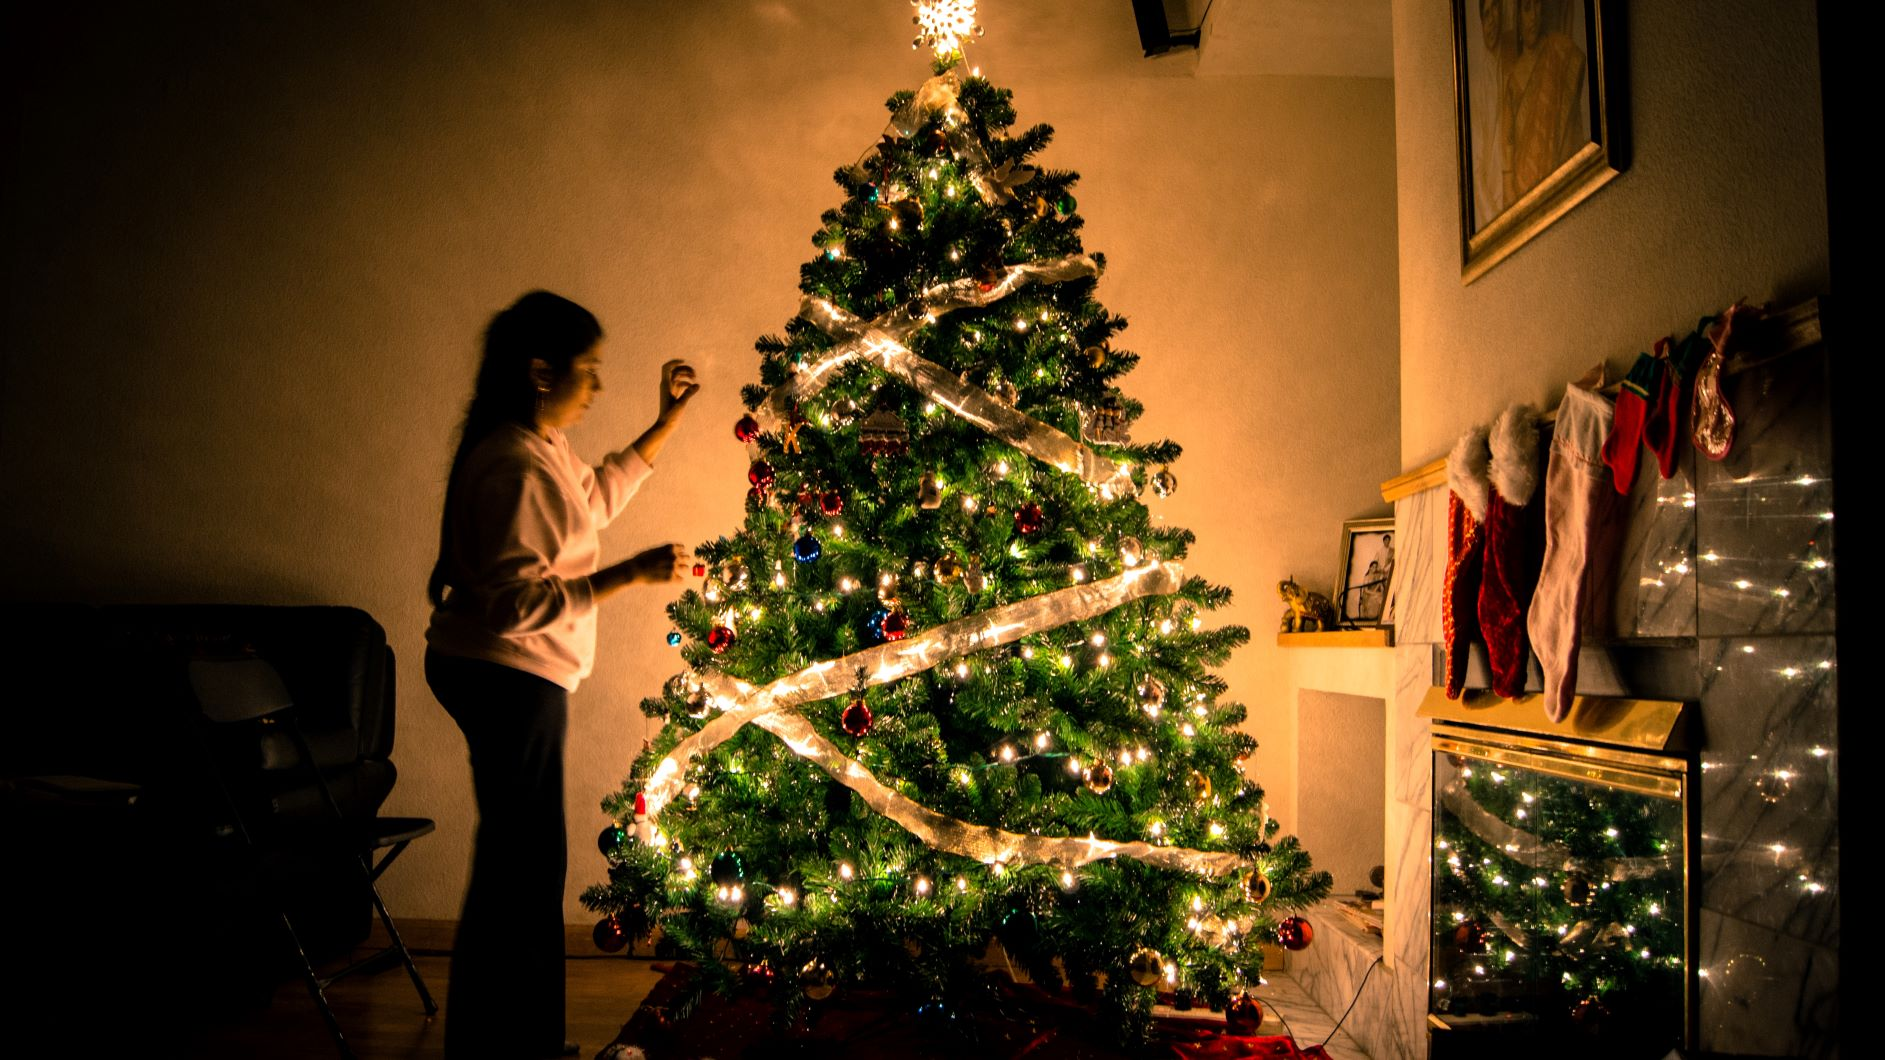 christmas tree, fire hazard, home safety, safety tips, christmas safety, home insurance, house fire